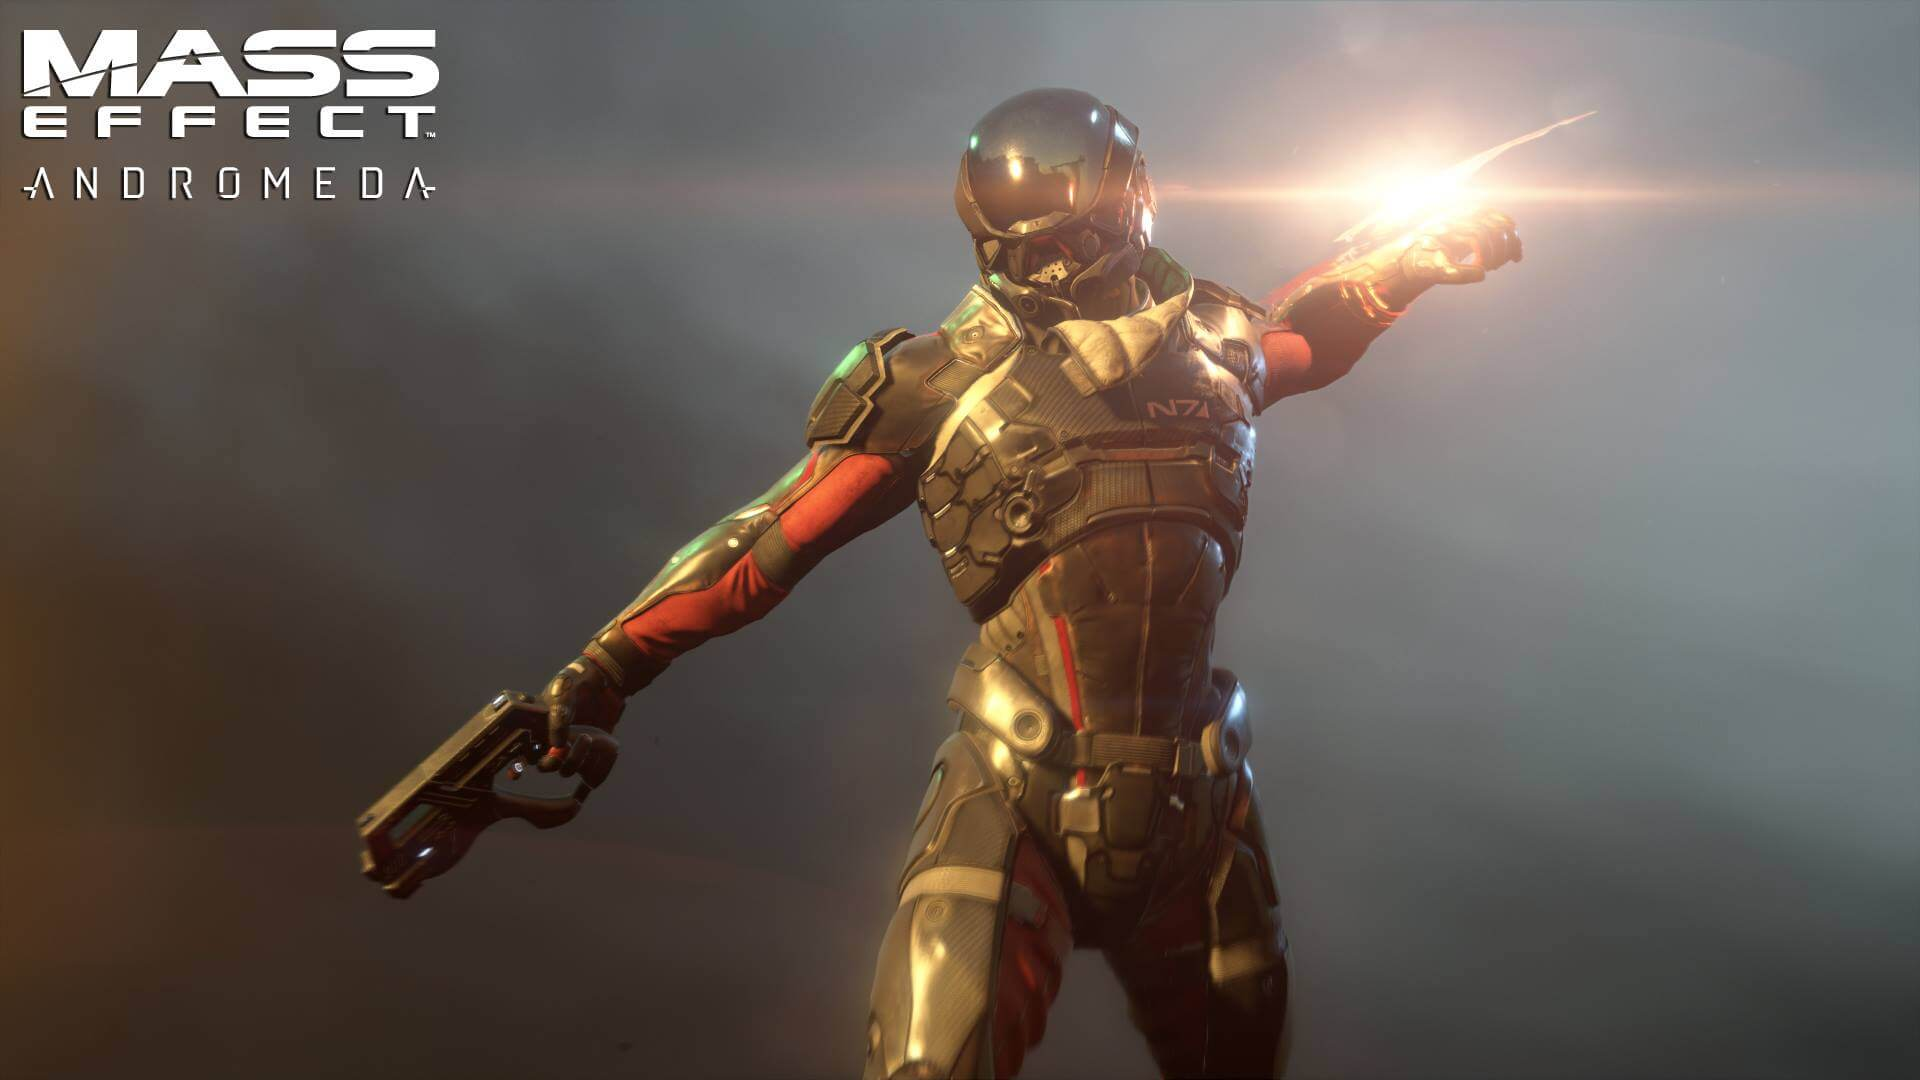 Mass Effect: Andromeda Story Details Possibly Leaked